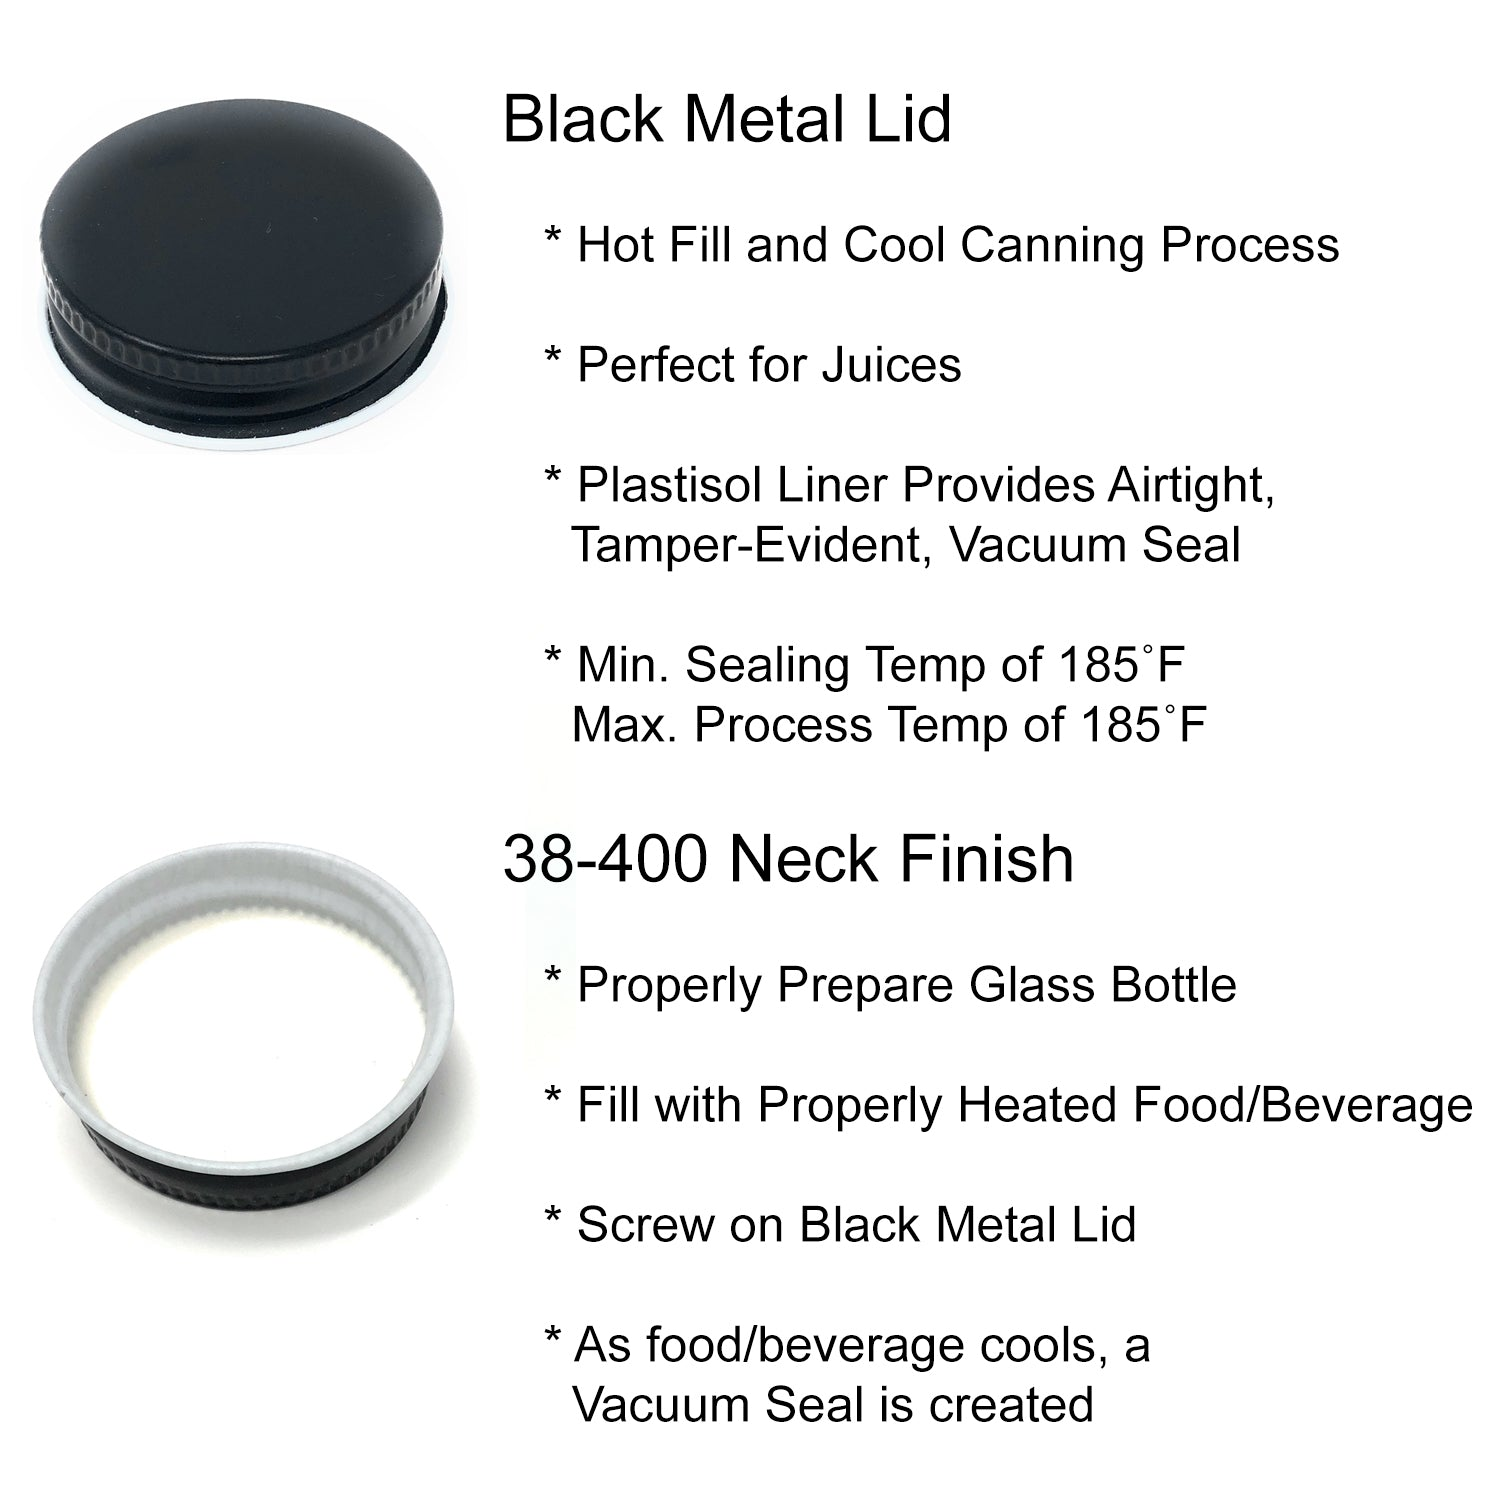 Clear Wide Mouth Glass Bottles for Beverage/Sauce with Black Metal Lids and Shrink Wrap Seals, 12 oz, Pack of 12